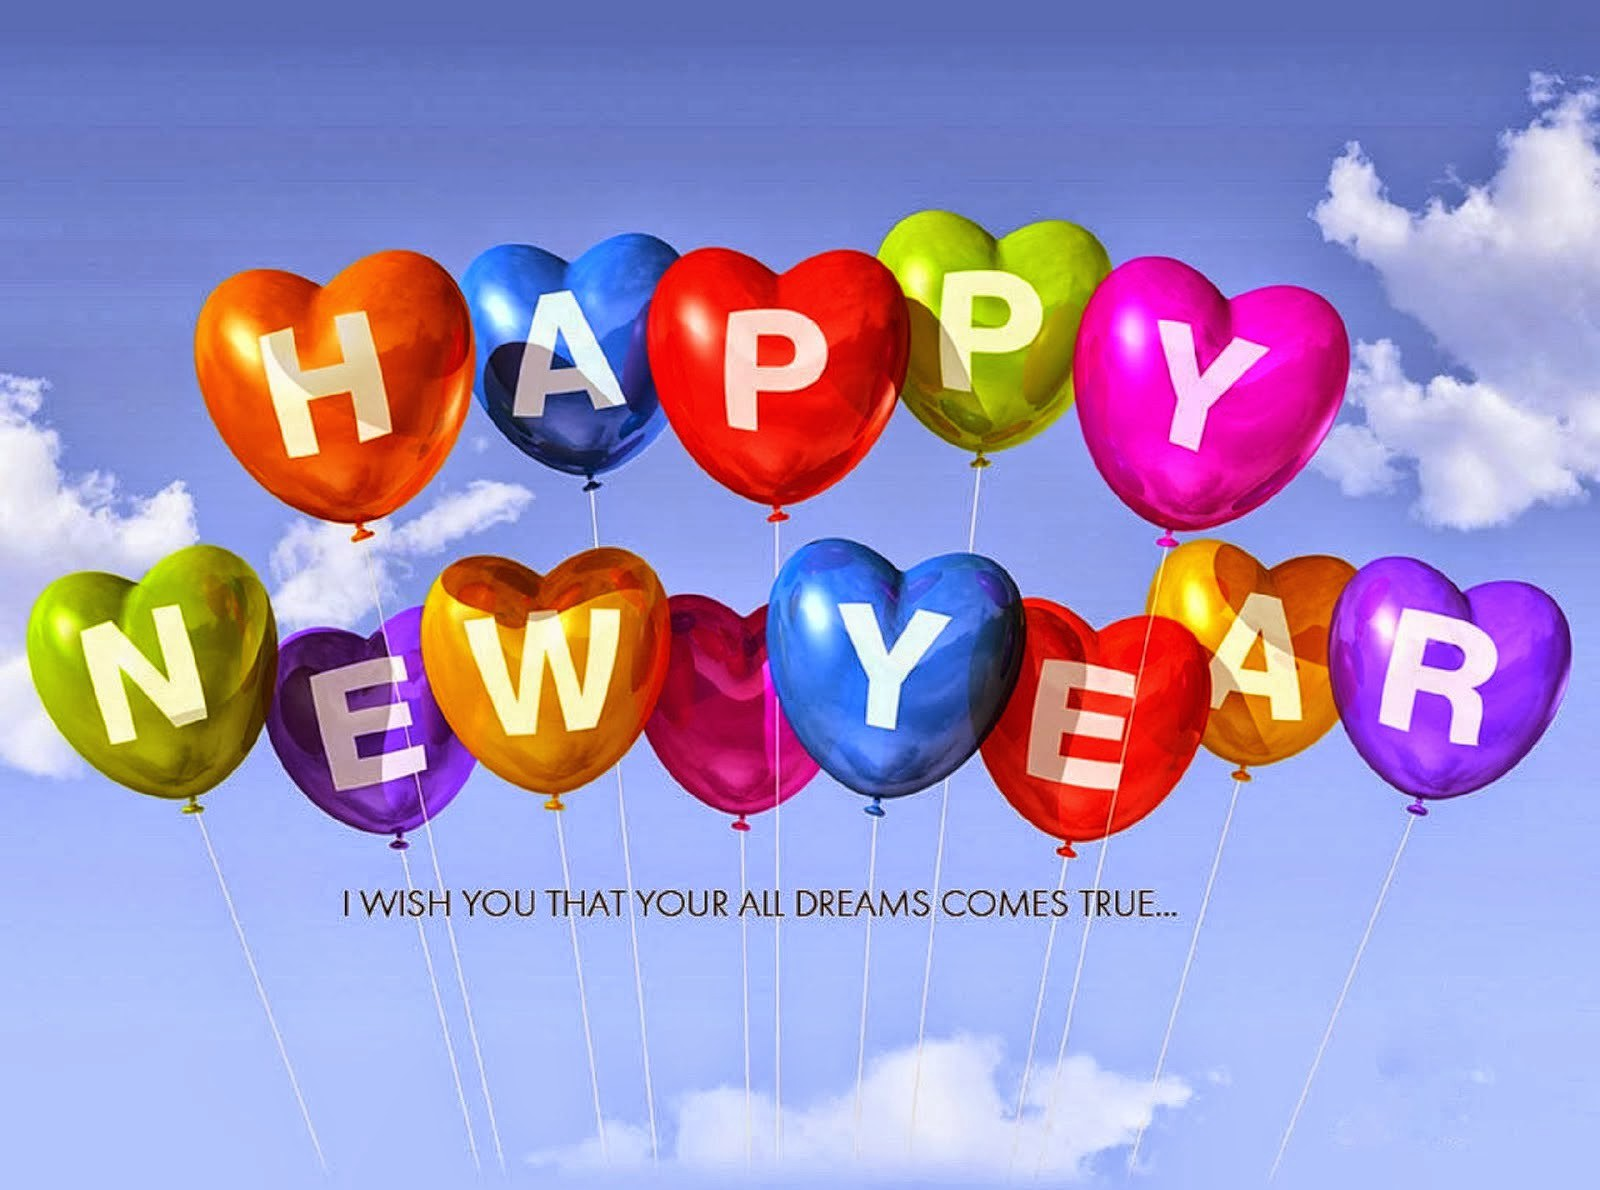 happy new year whatsapp status quotes messages saying with special new year wishes